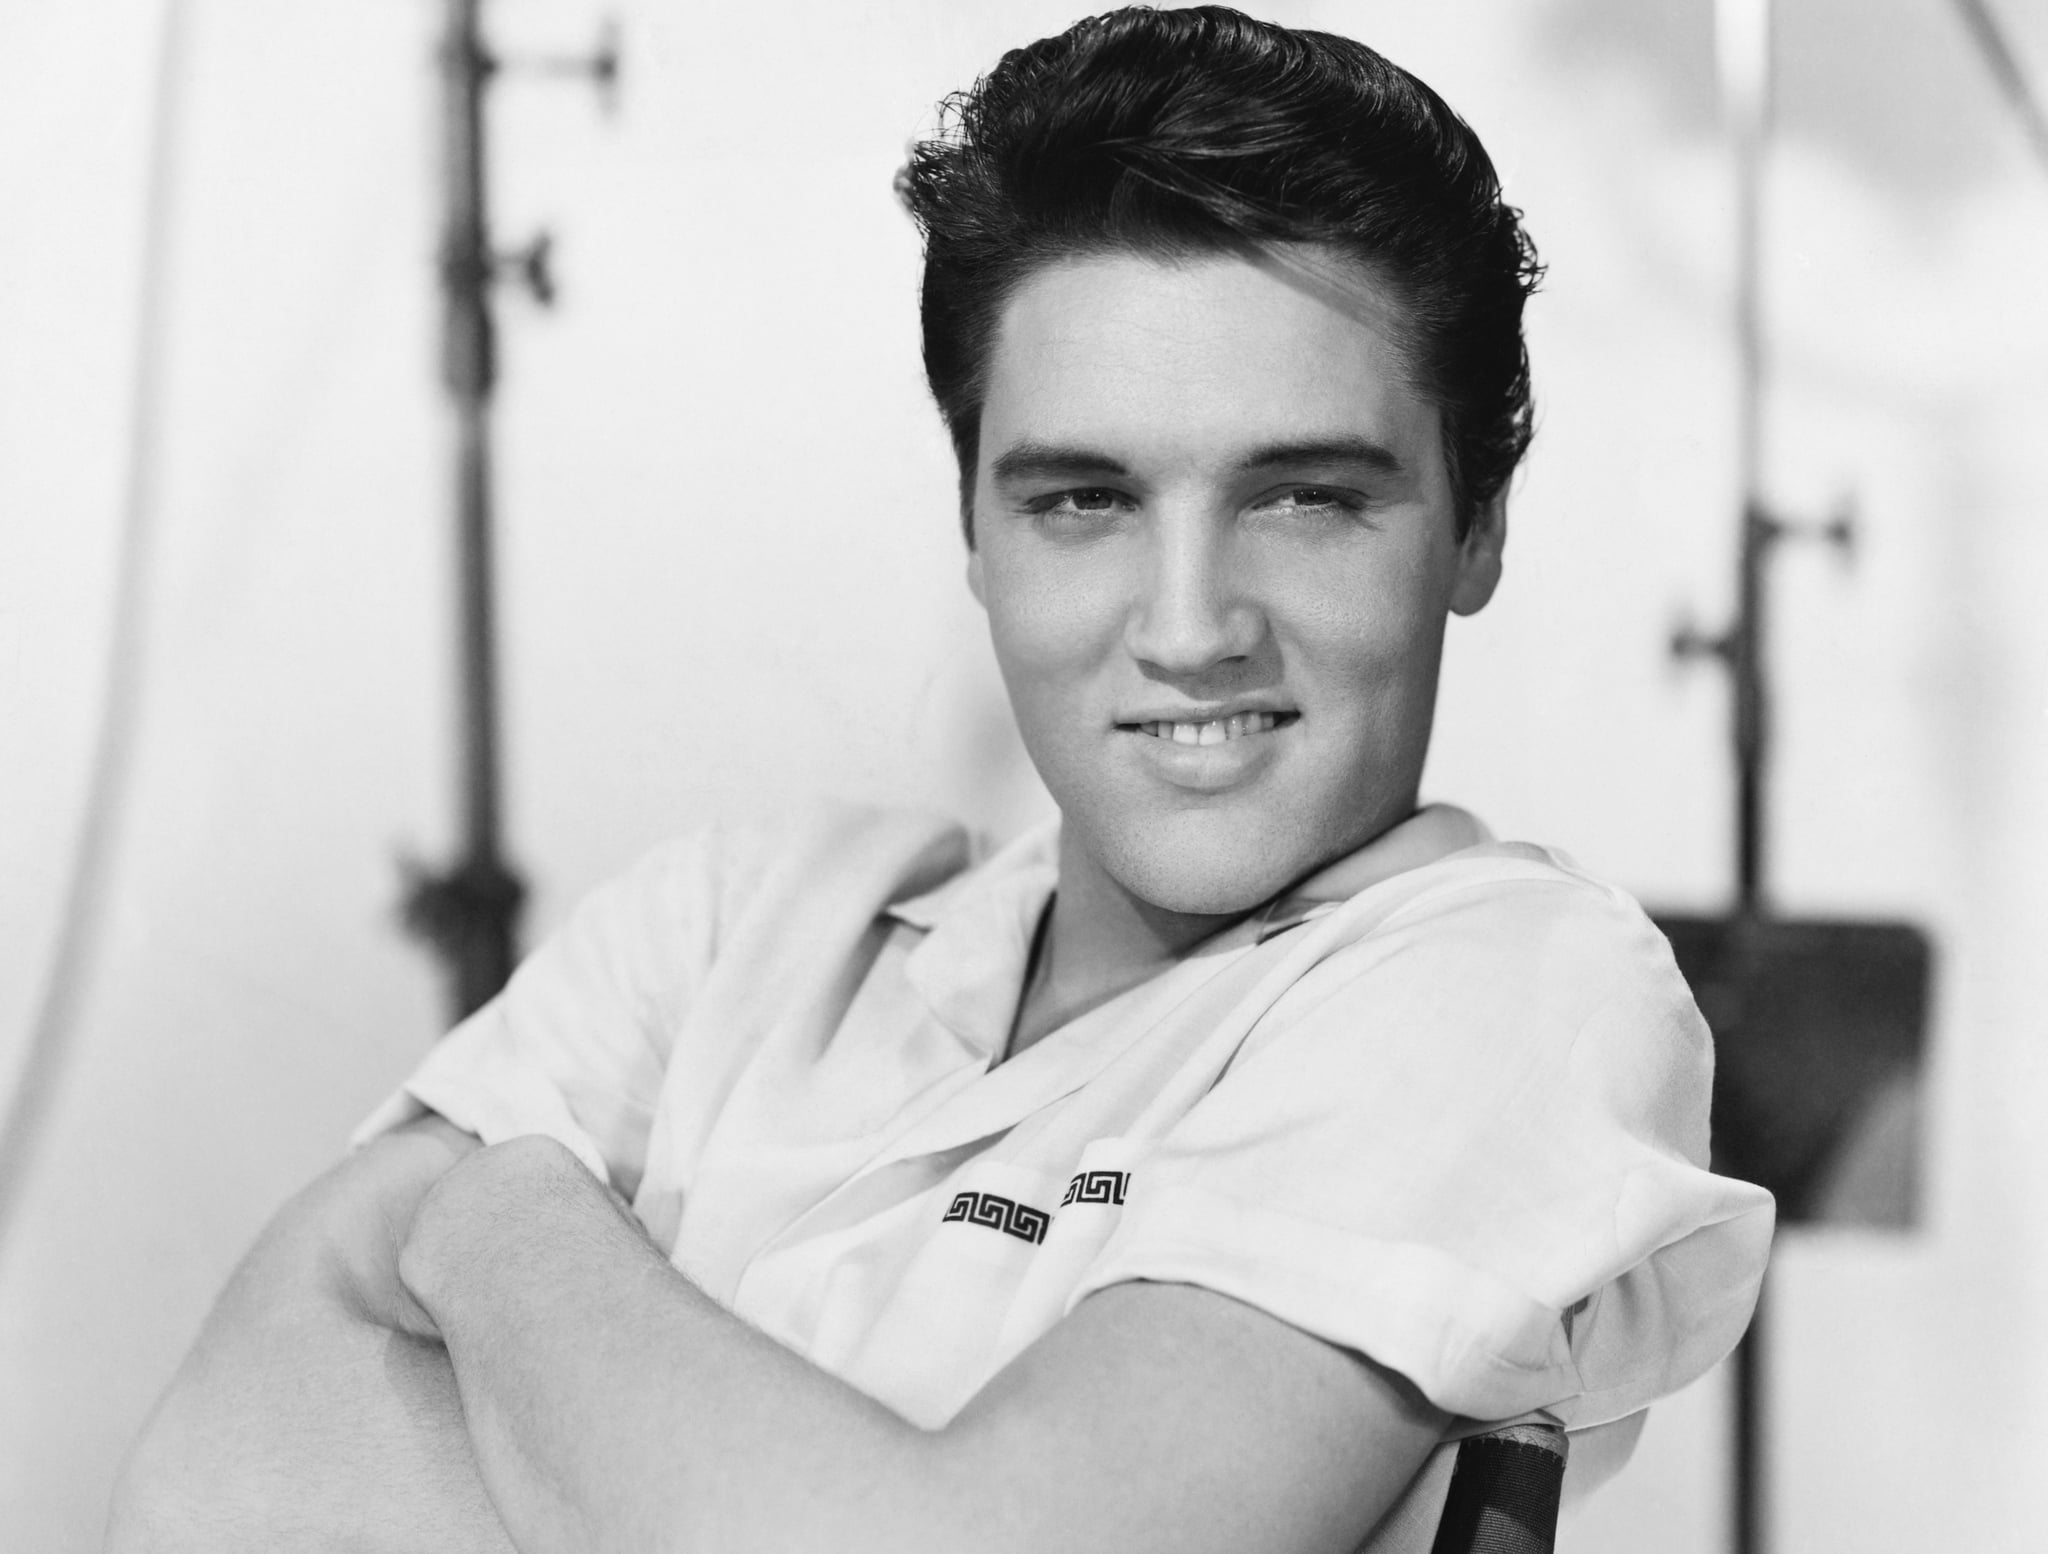 How Old Would Elvis Presley Be in 2017? | POPSUGAR Celebrity